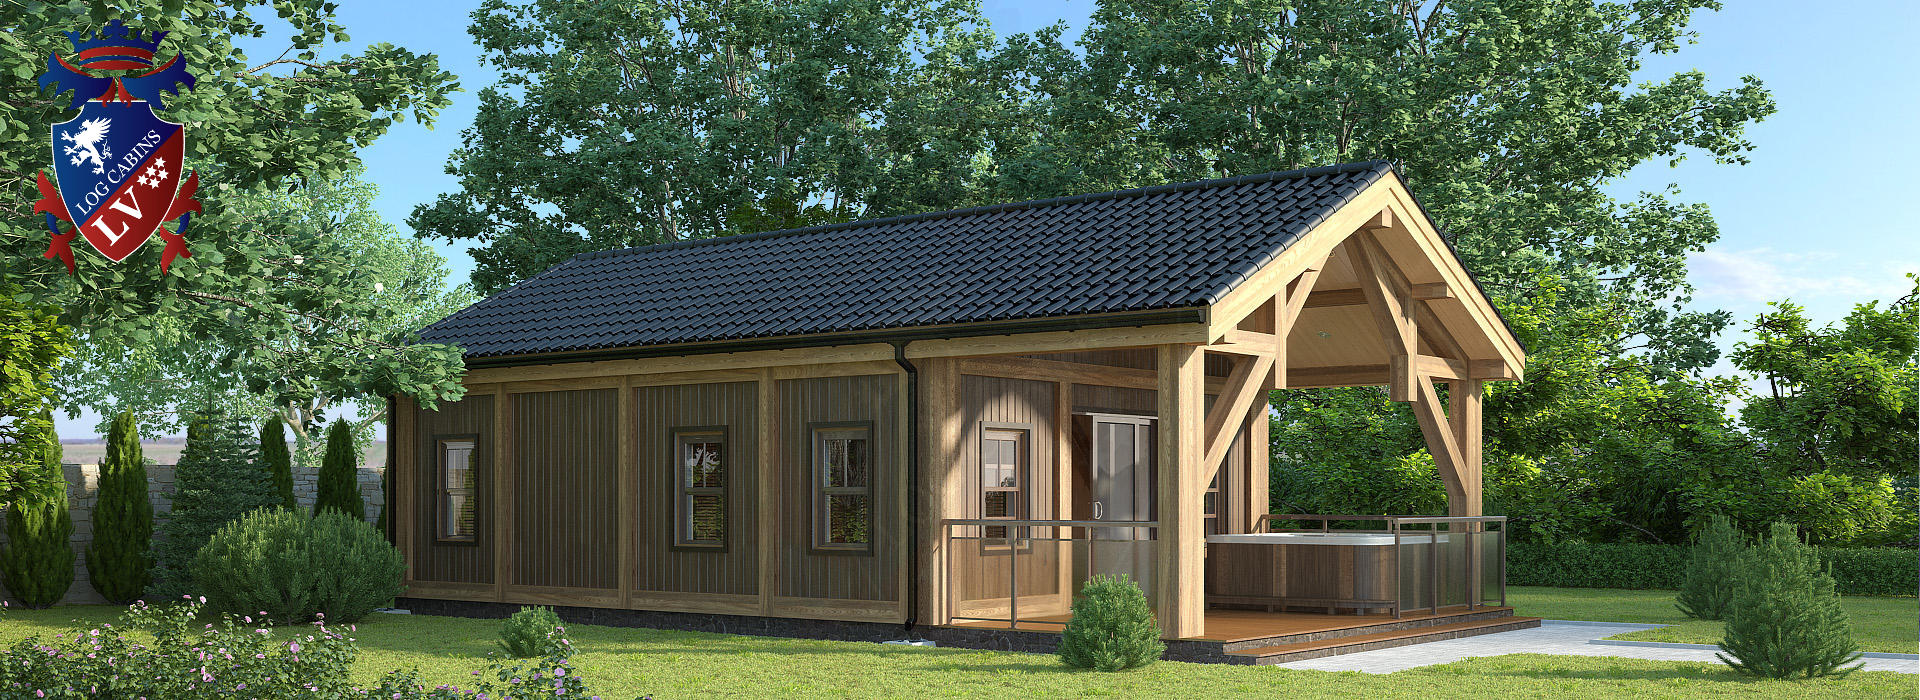 quality timber frame buildings Archives - Log Cabins LV Blog